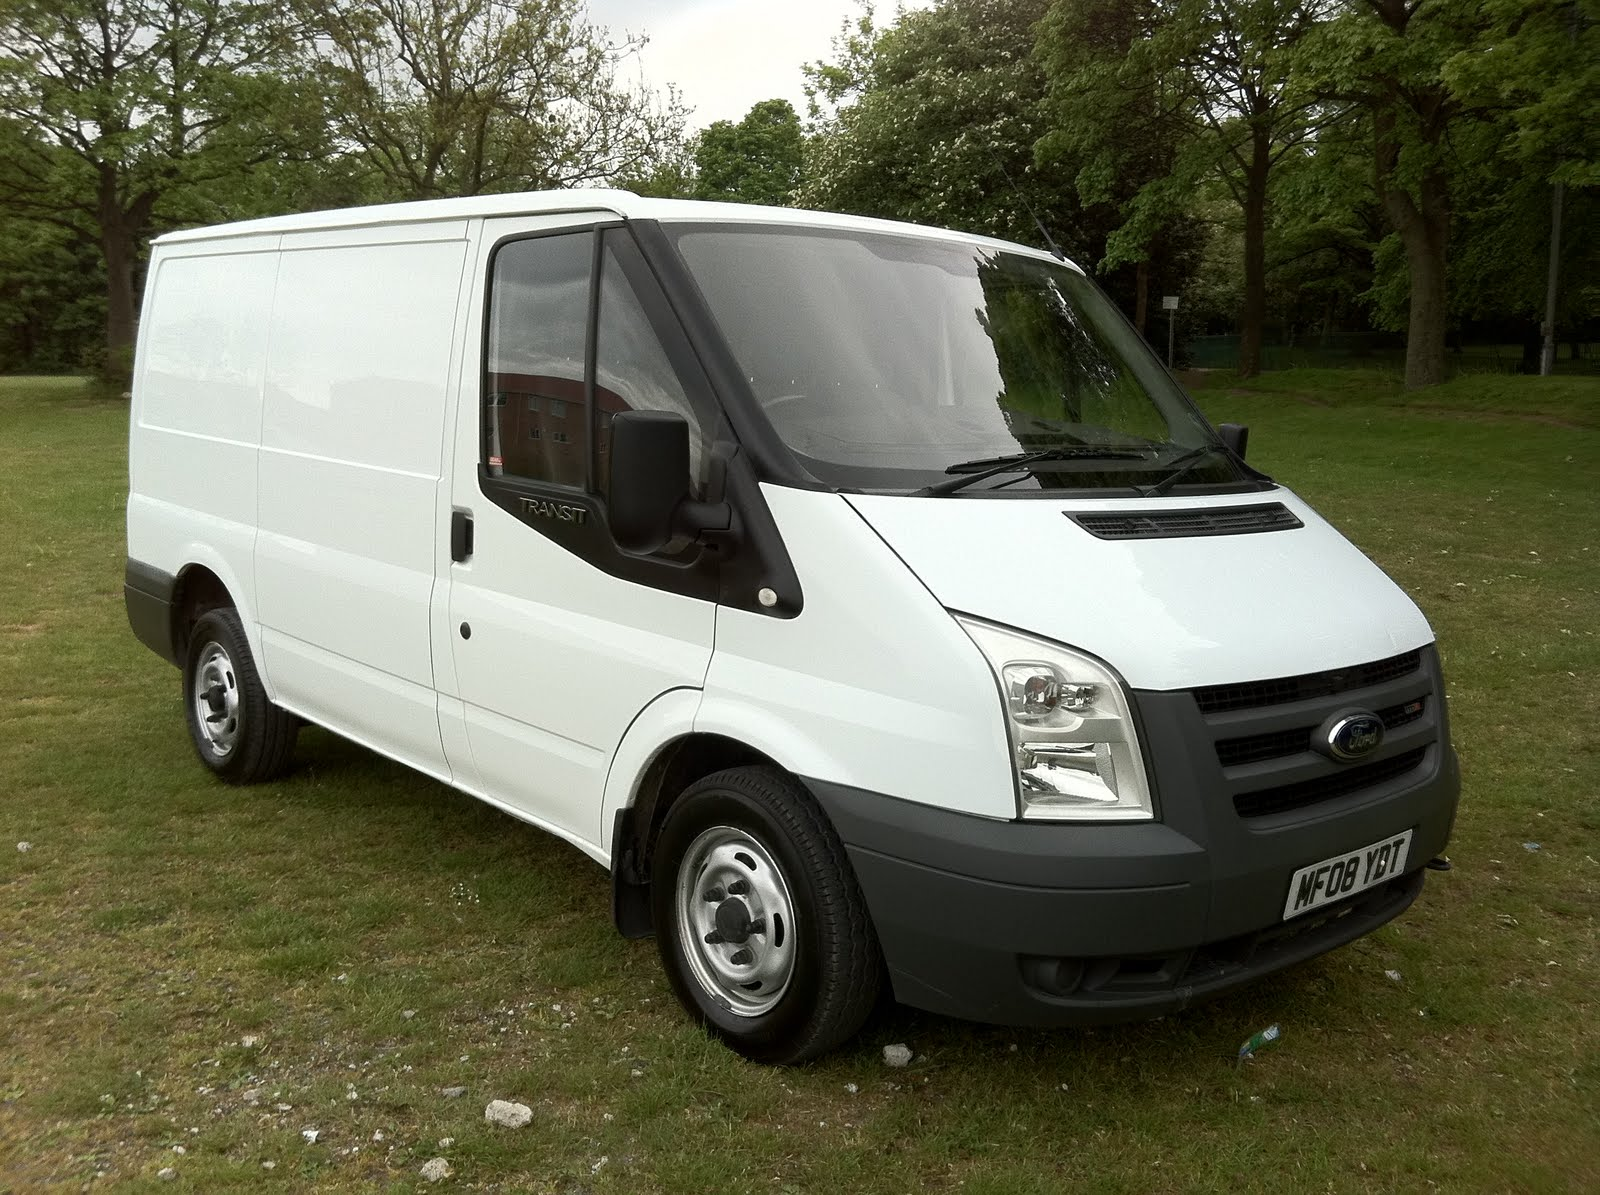 accident repair service centre for sale ford transit 280 110 swb in white. Cars Review. Best American Auto & Cars Review